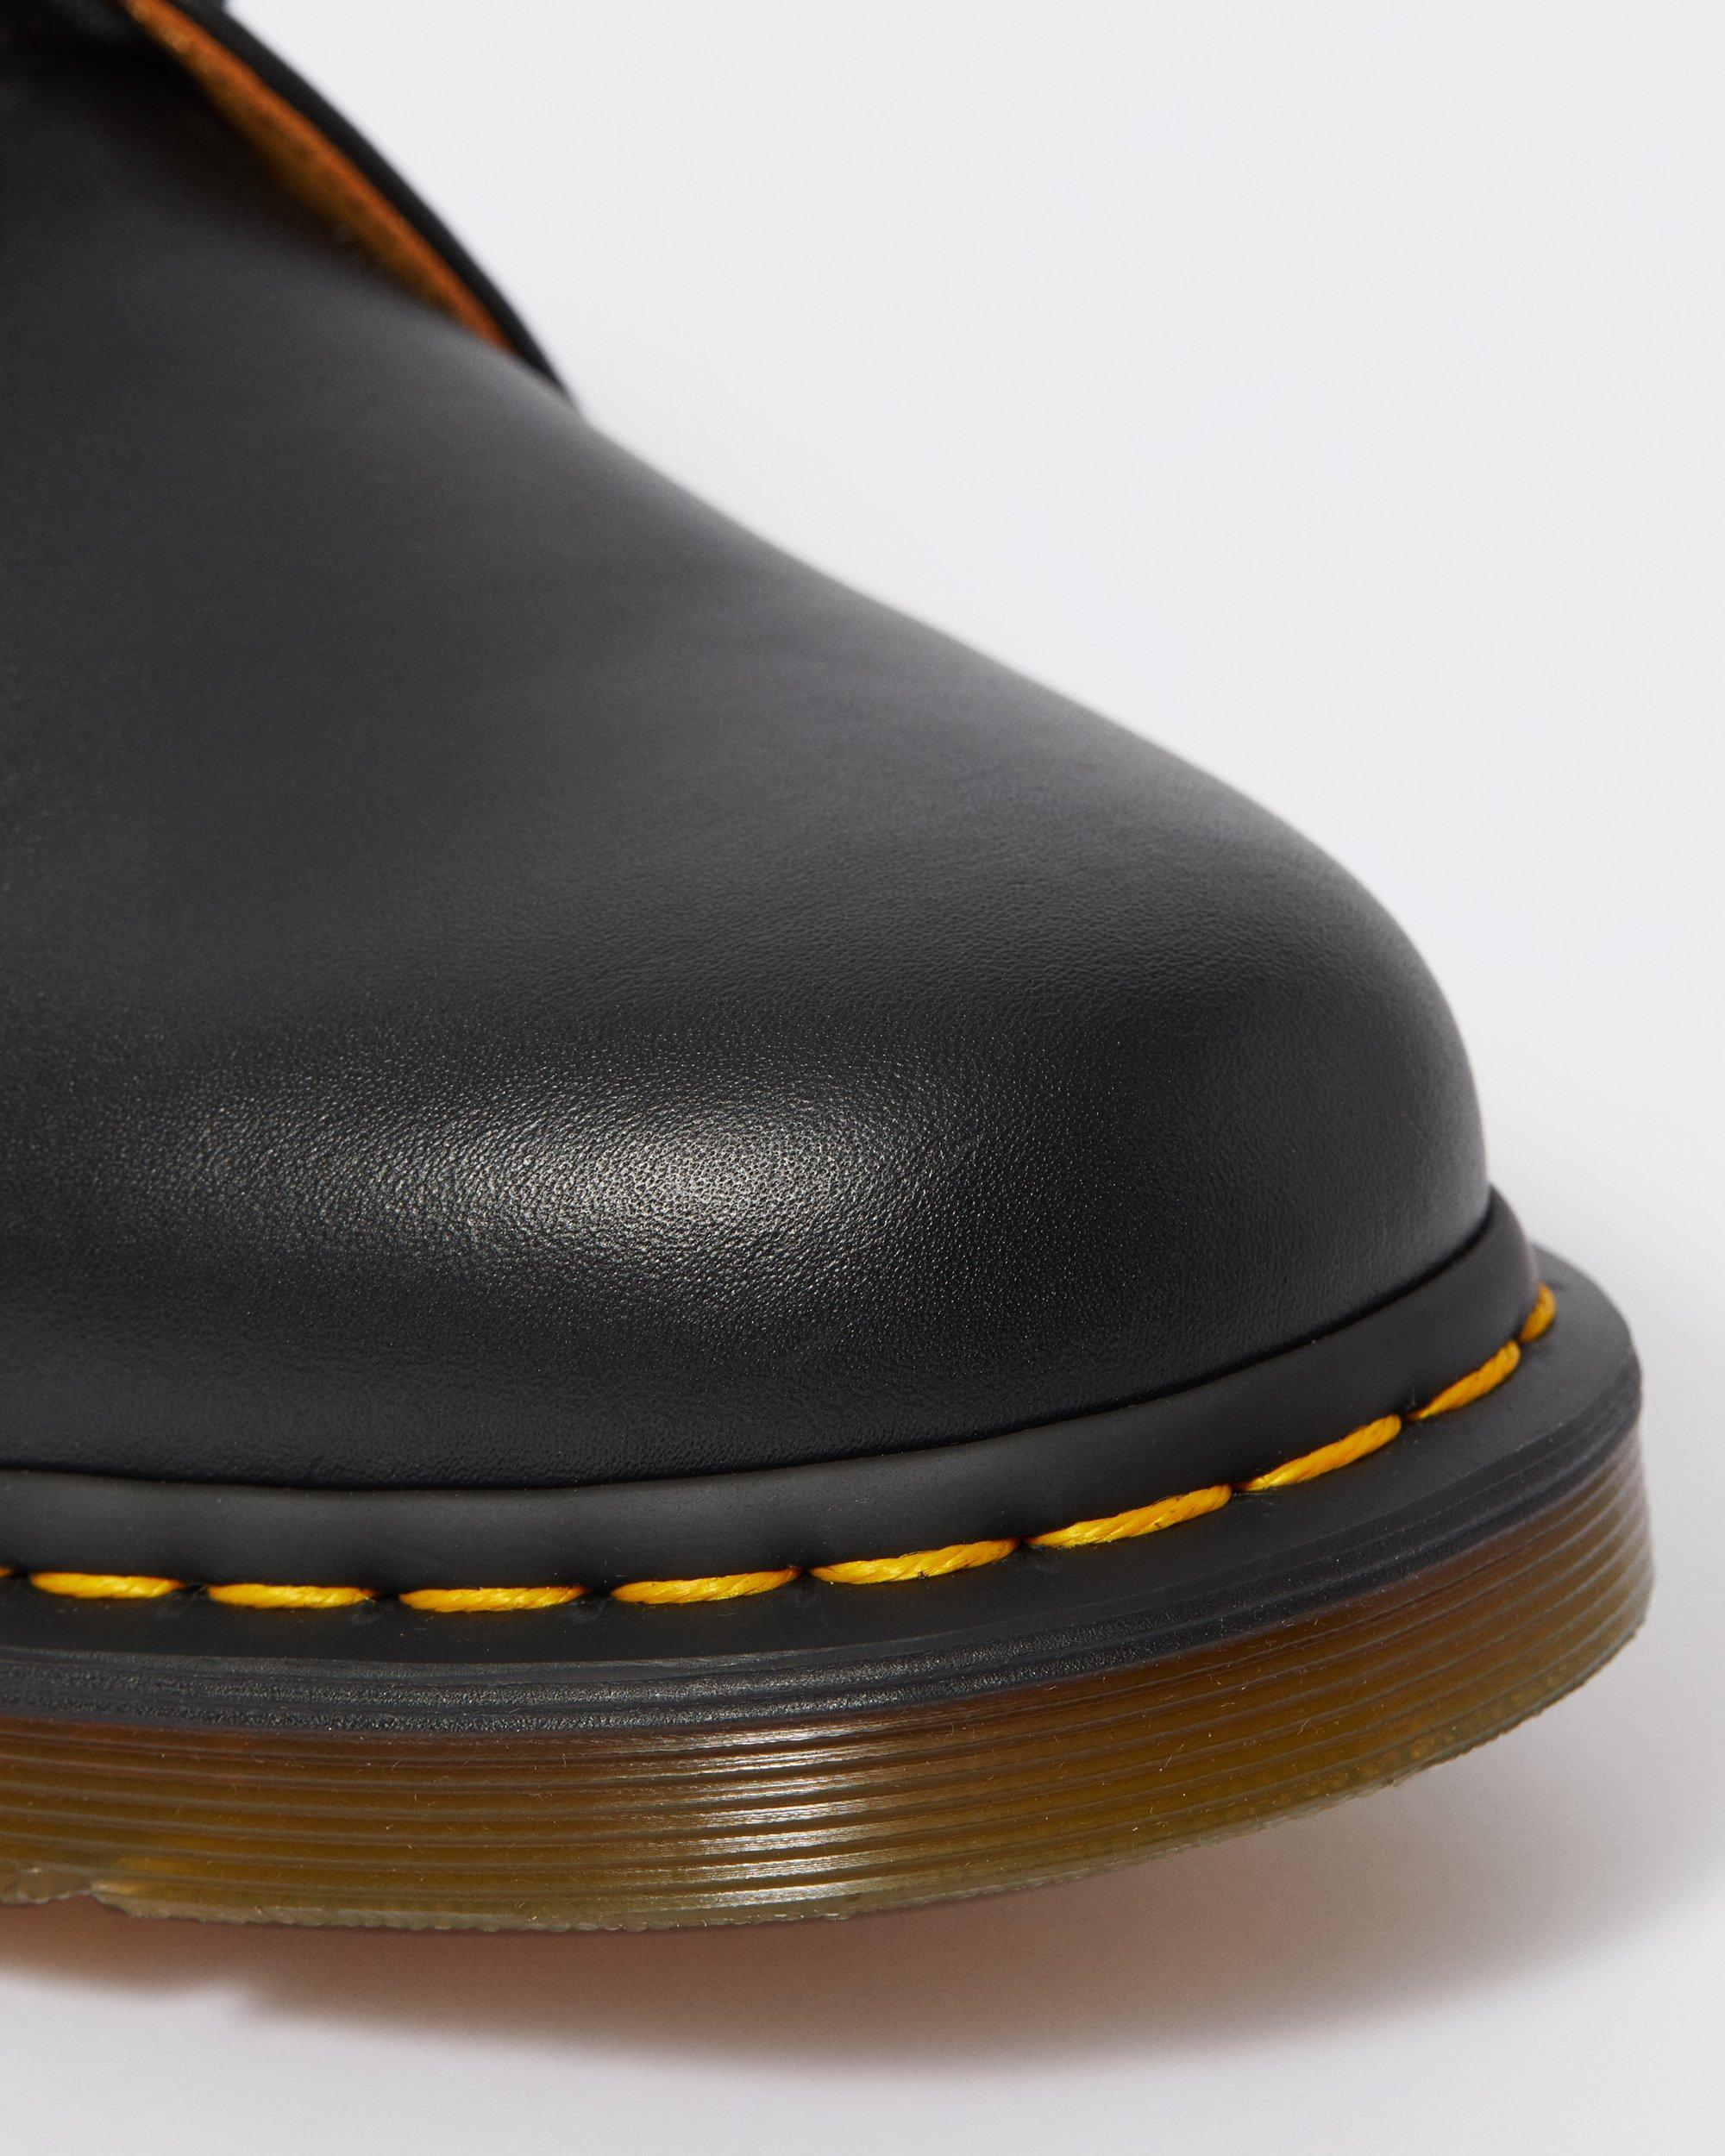 1461 PLAIN WELT (PW) SMOOTH LEATHER OXFORD SHOES (BLACK)